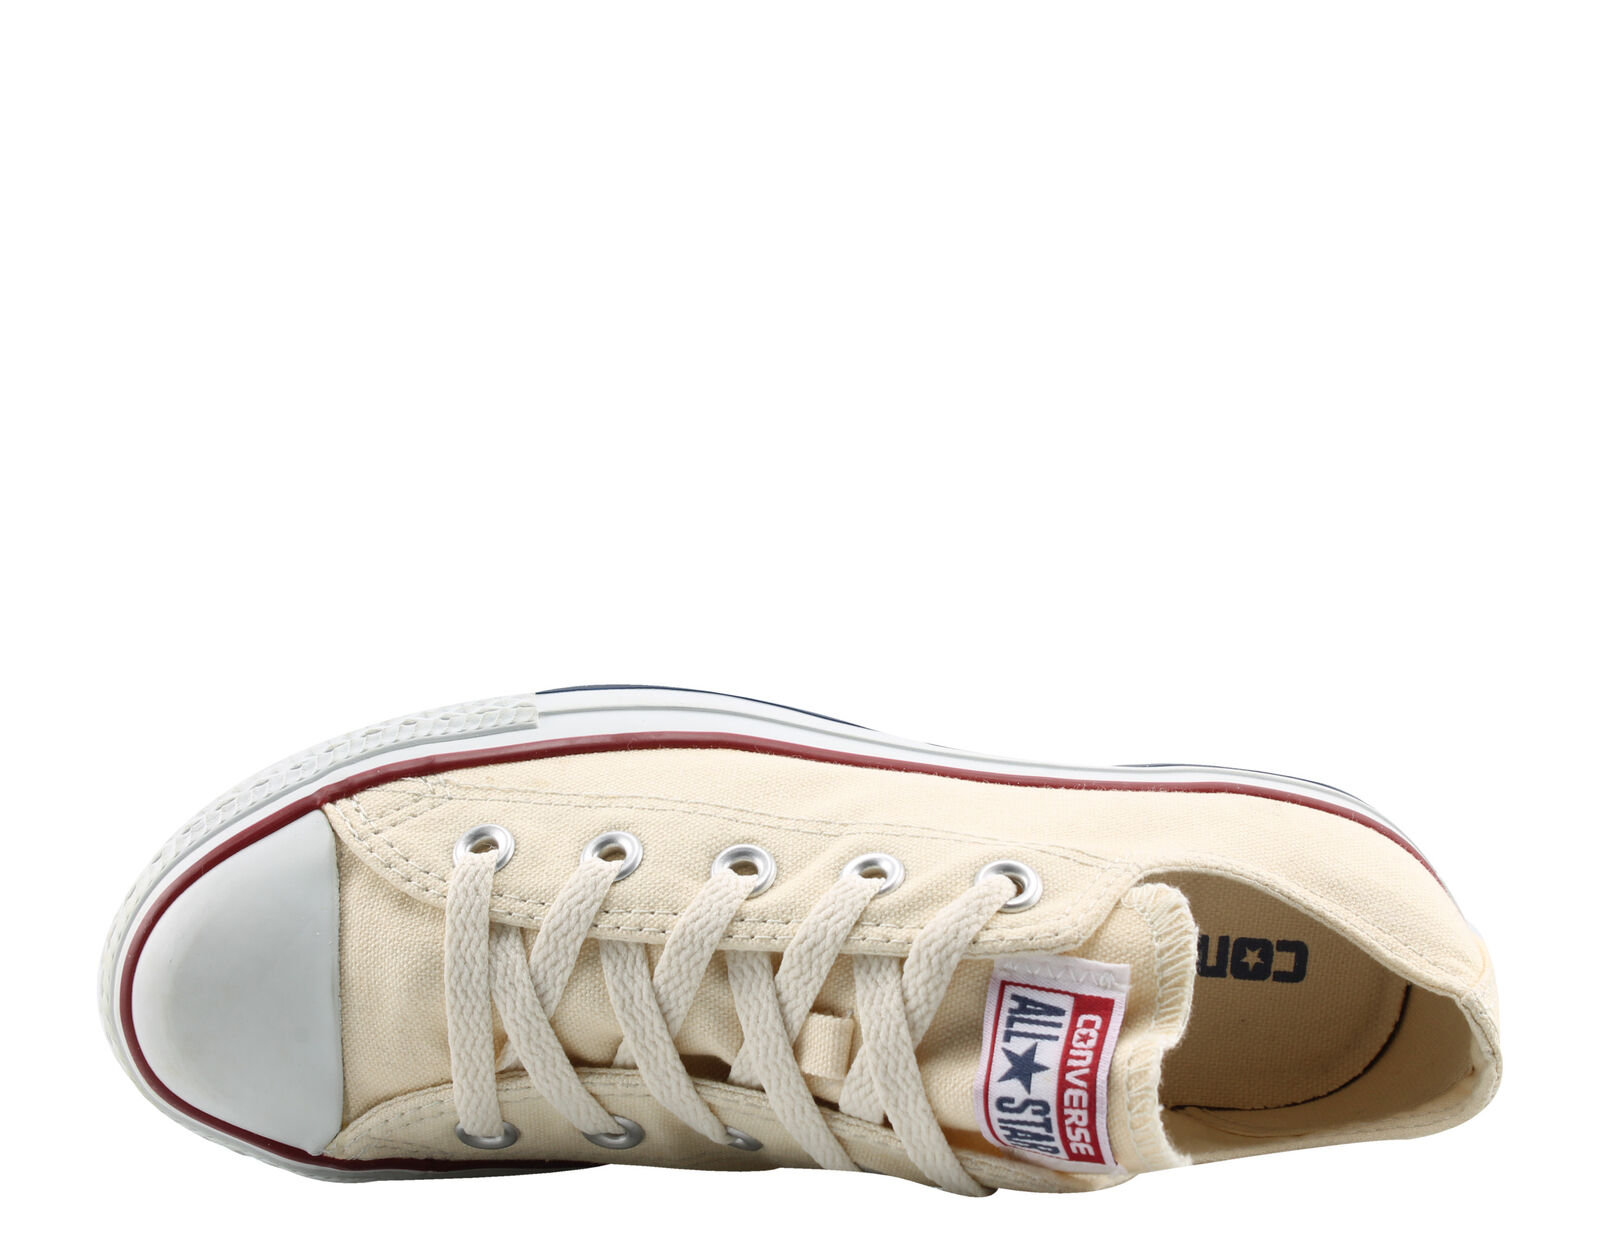 Hobart Punto Permanecer de pié  Converse Chuck Taylor All Star OX White Low Top Sneakers M9165 for sale  online